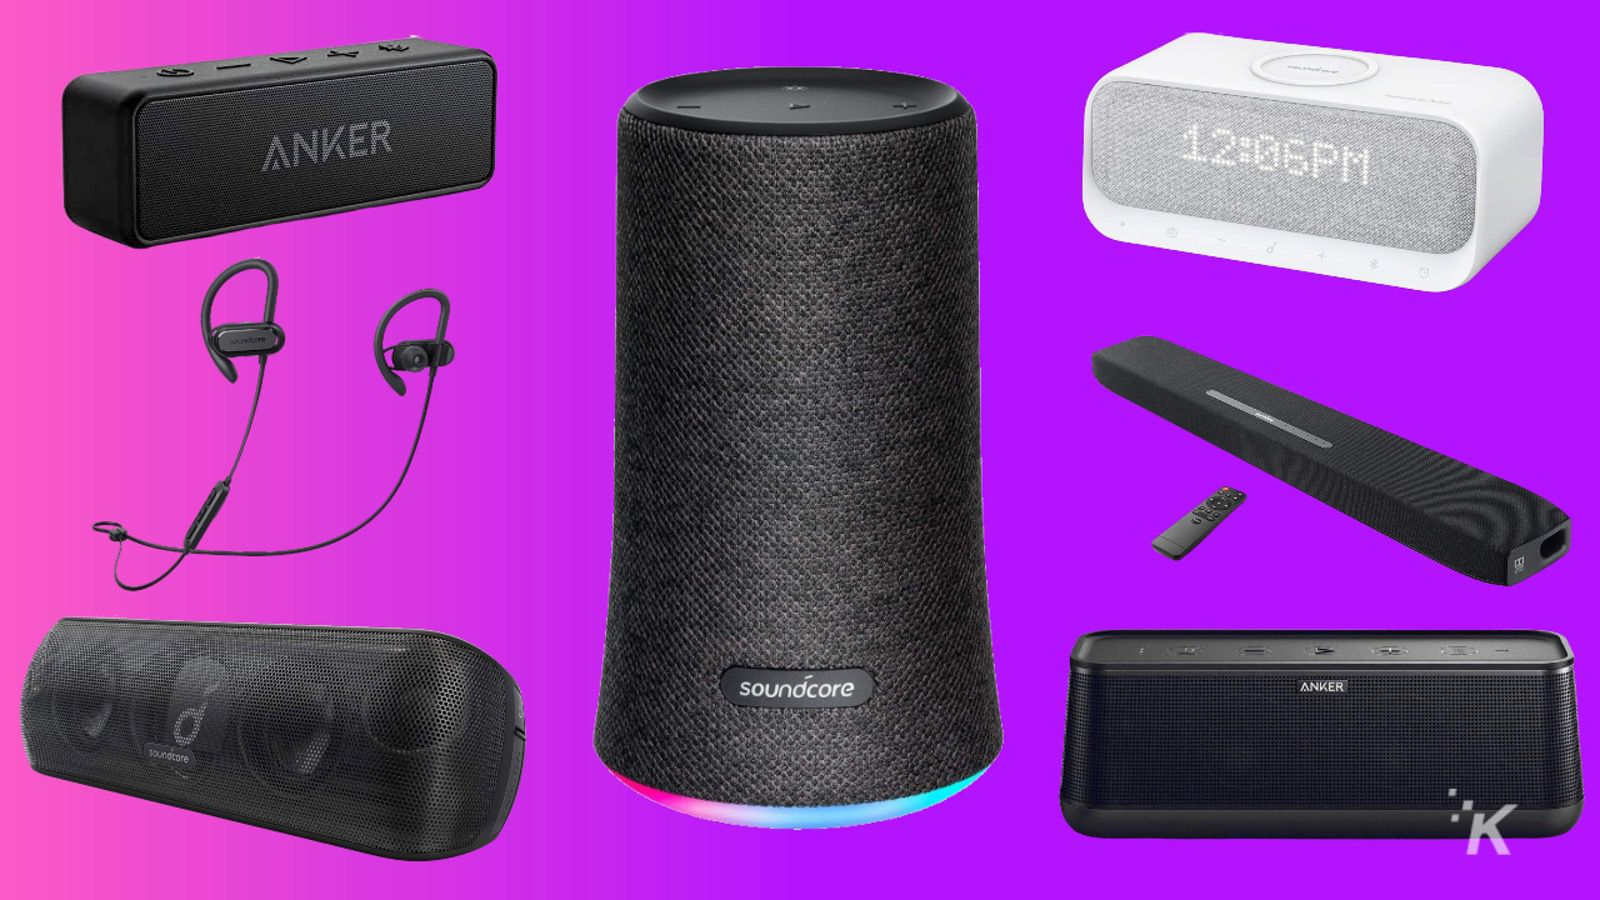 anker speakers knowtechie